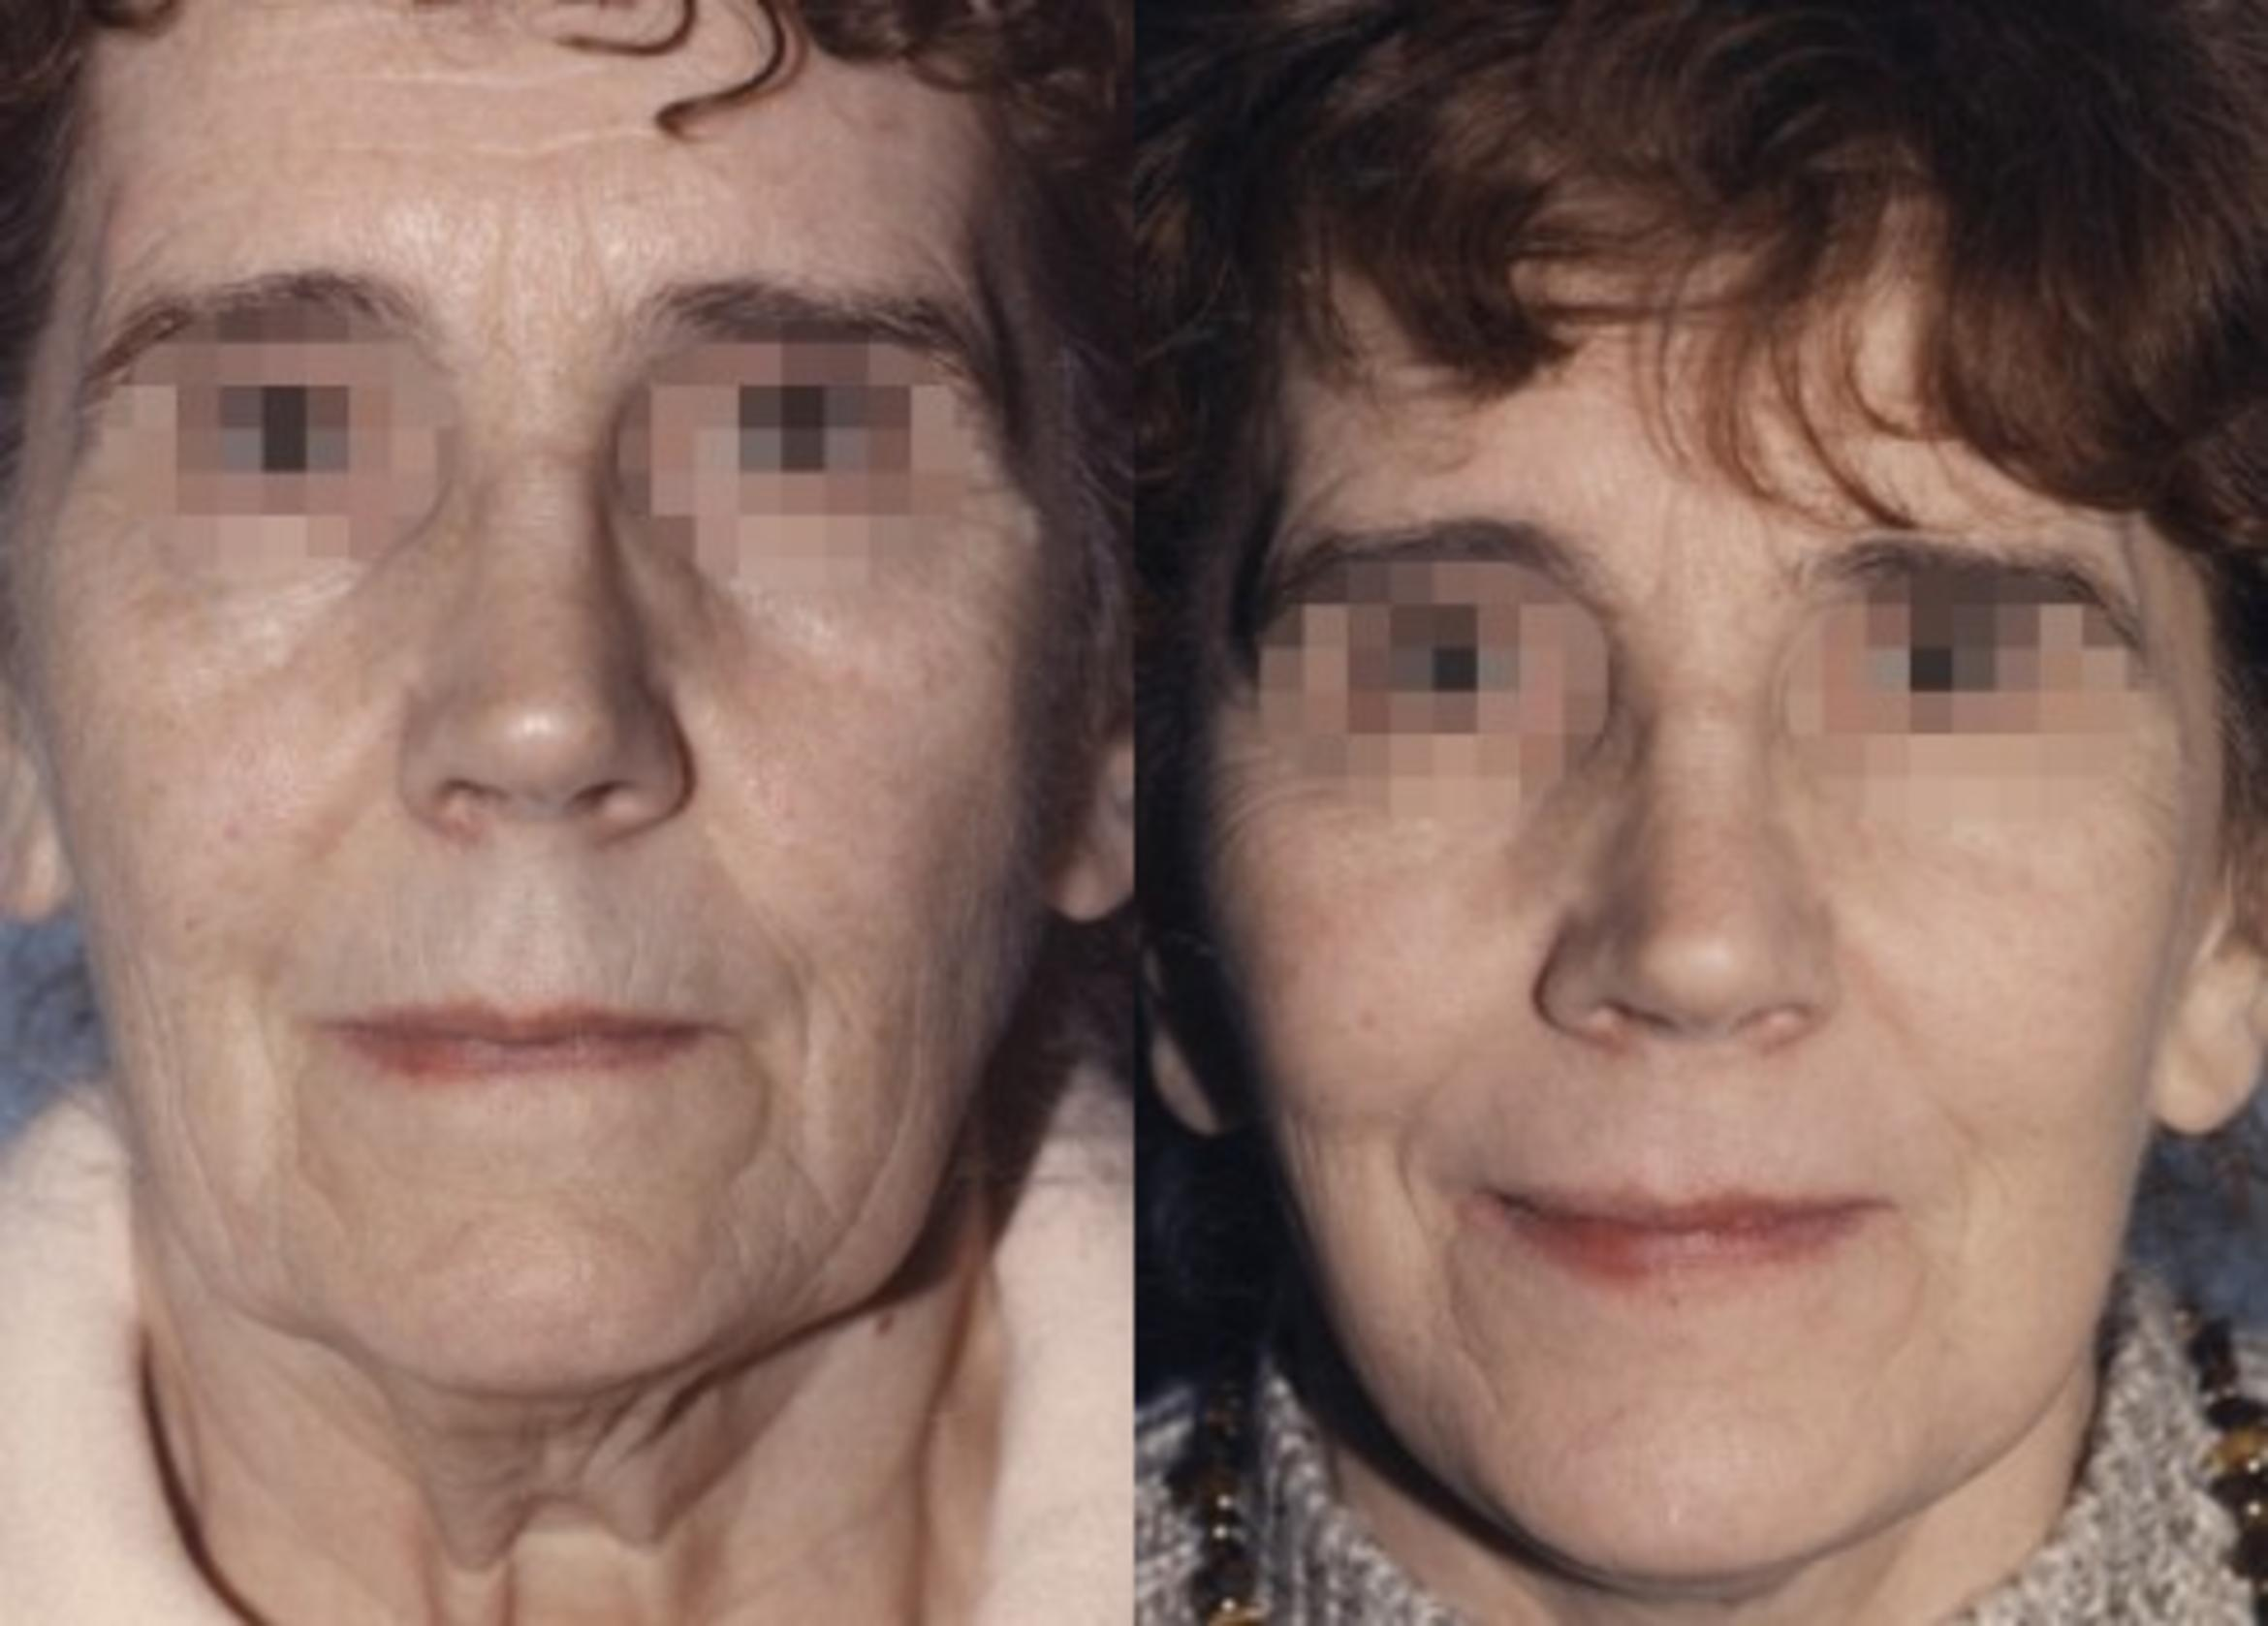 Face / Neck Lift Before & After Photo | Jersey City, New Jersey | The Derm Group